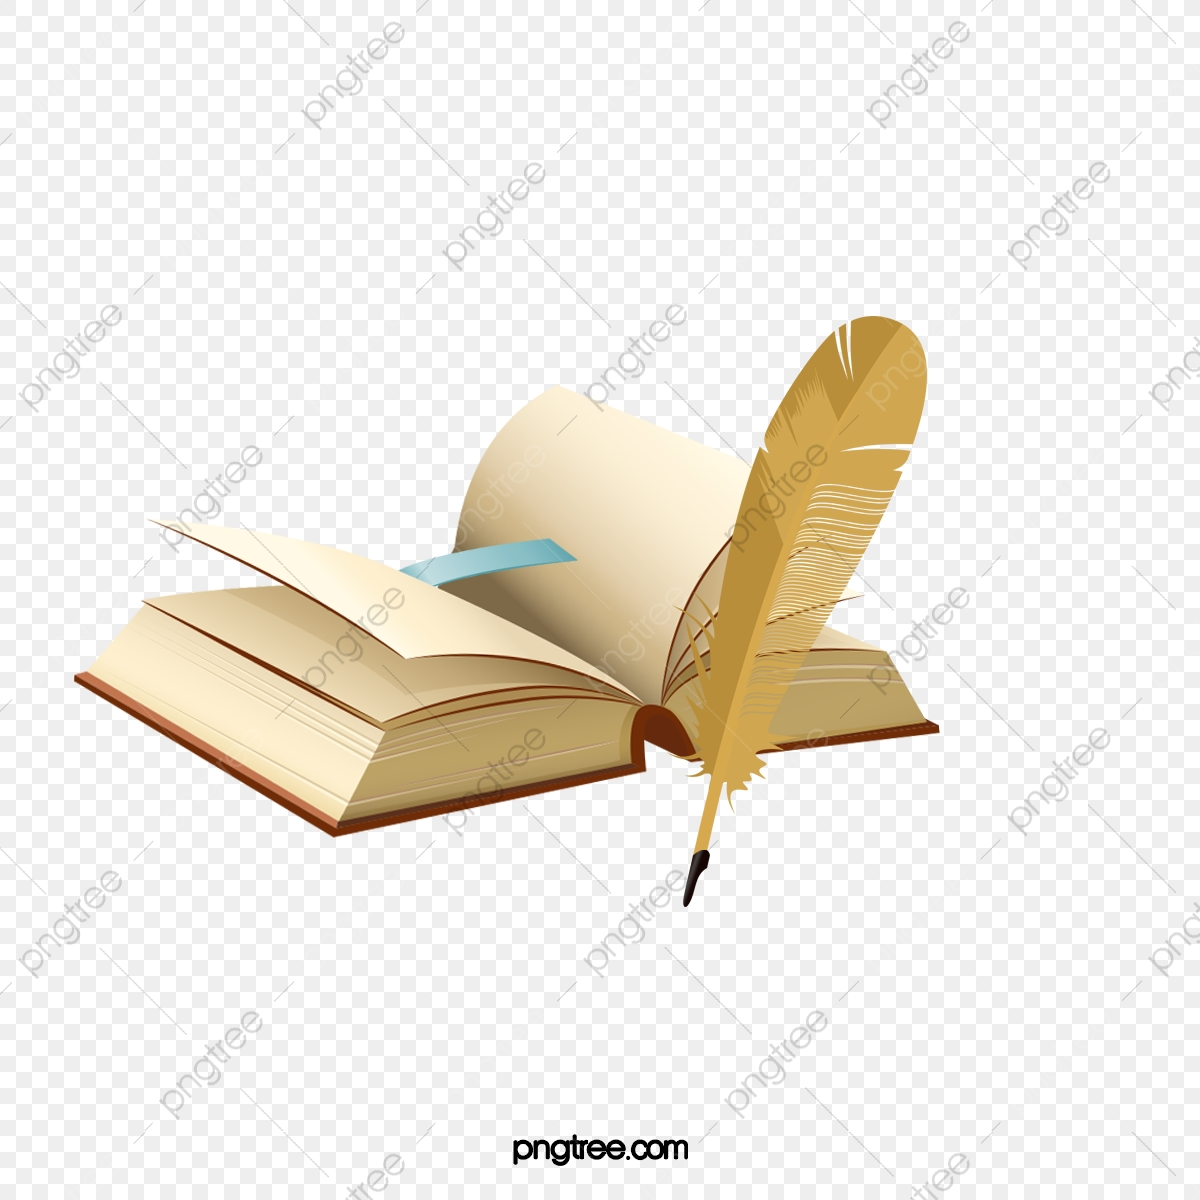 Books And Feathers Quill Hand Painted Book Png Transparent Clipart Image And Psd File For Free Download Download the hands, people png on freepngimg for free. https pngtree com freepng books and feathers 1380398 html